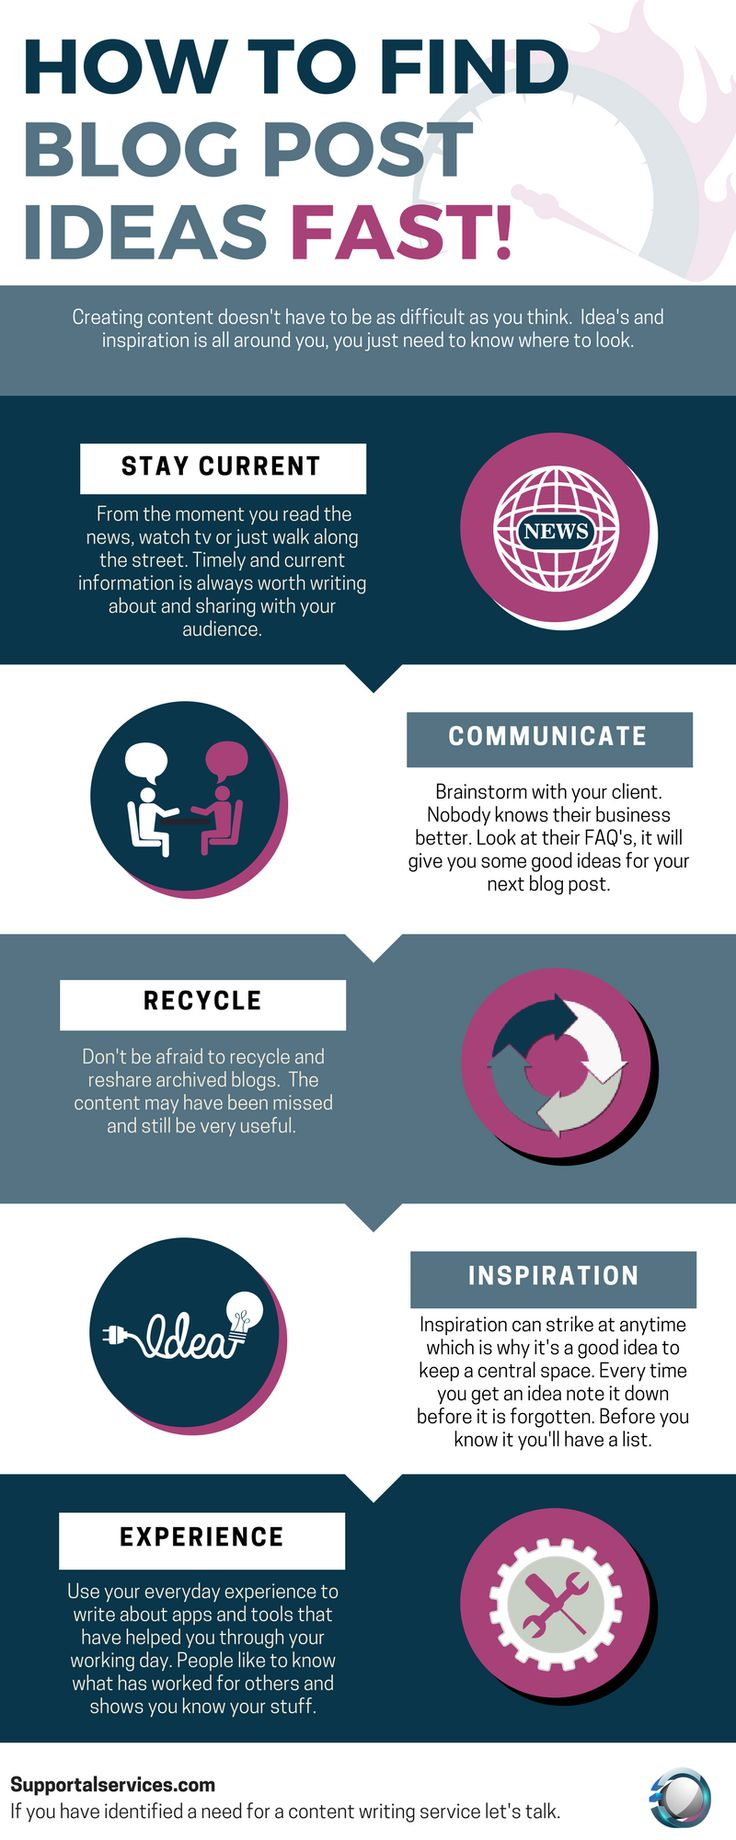 Infographic: How to find blog post ideas fast